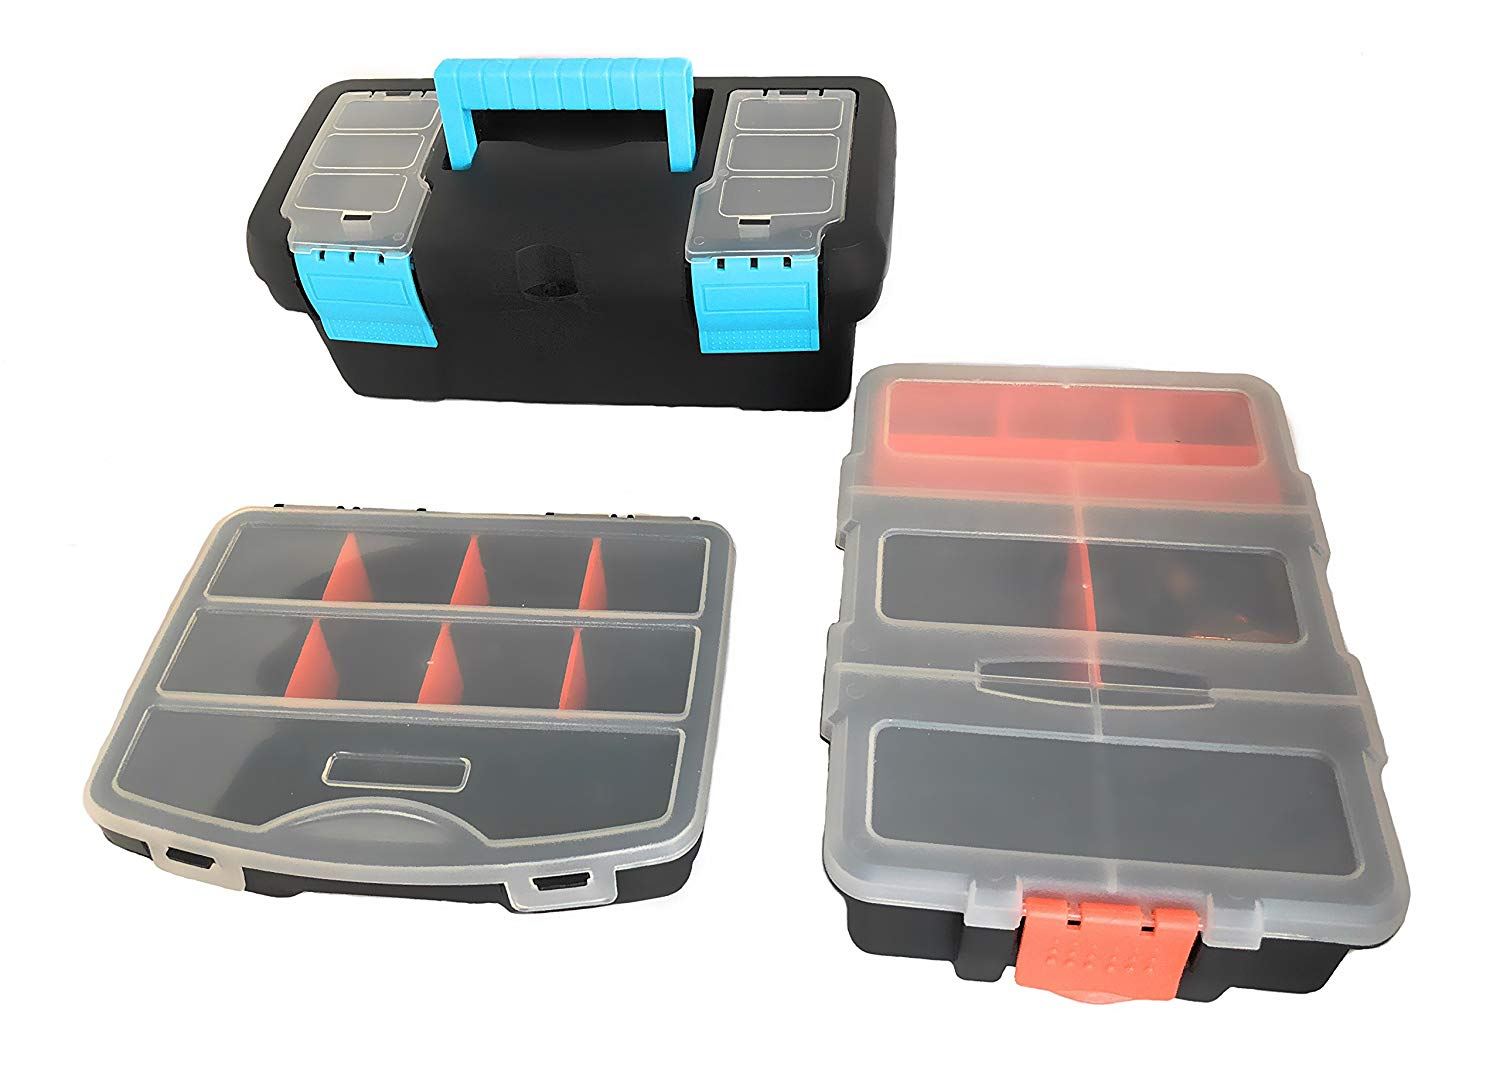 3 Arts and Crafts Supplies Storage Containers With Compartments | Size Adjustable Storage Box With Compartments | Hobby Organizer Box | Small Tool Box Set of 3